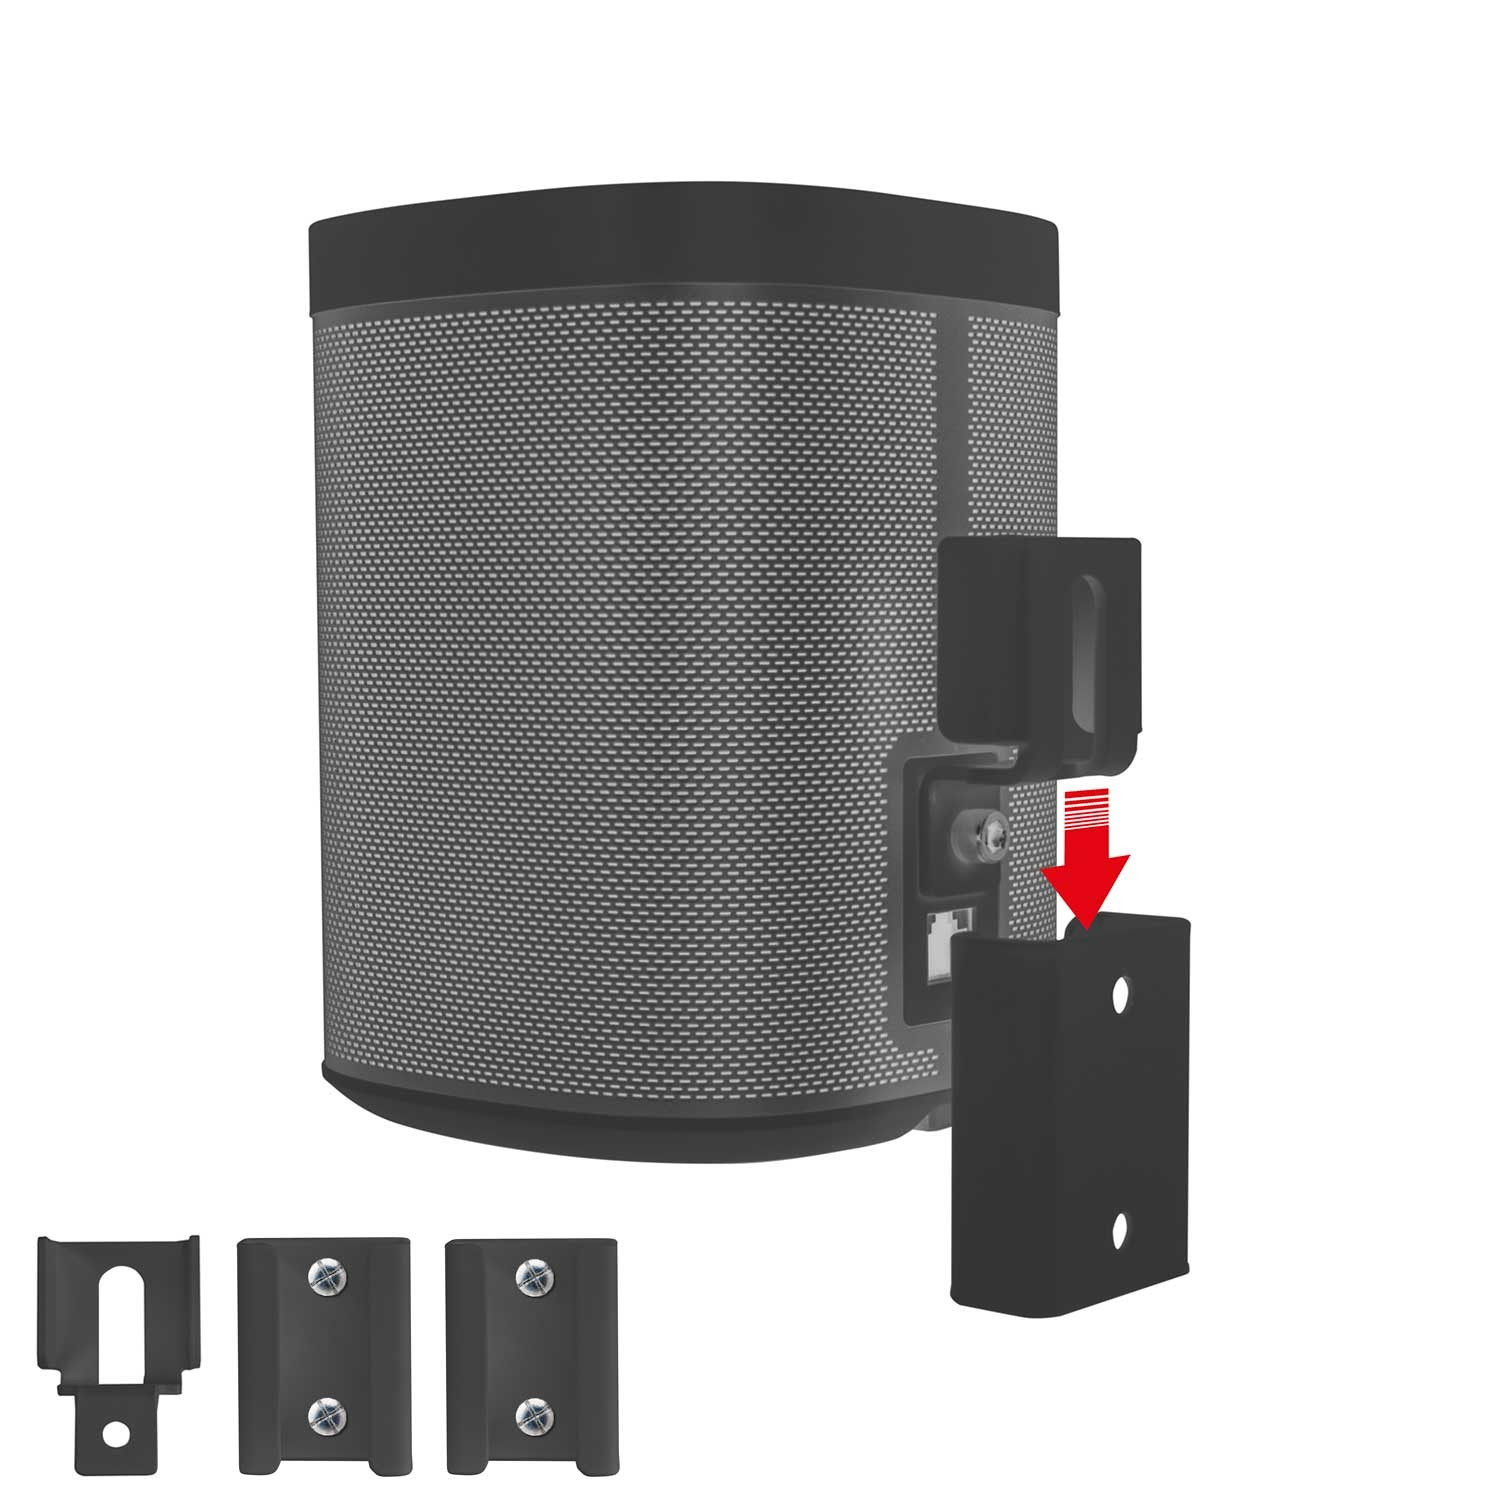 vebos portable wall mount sonos play 1 black the. Black Bedroom Furniture Sets. Home Design Ideas